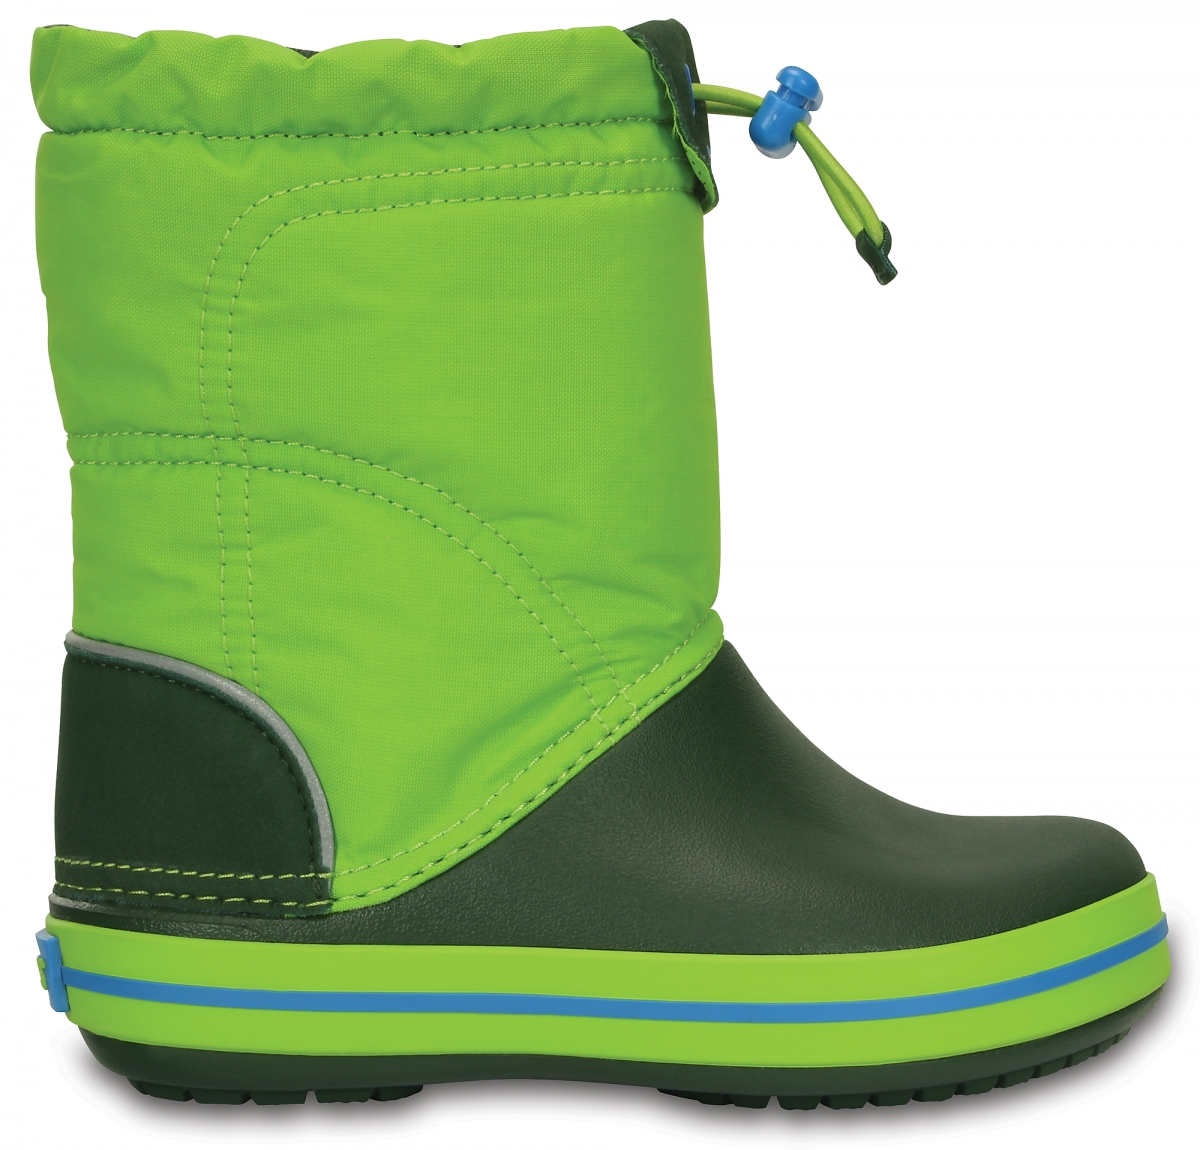 Crocs Crocband LodgePoint Boot Kids - Lime/Forest Green, J2 (33-34)